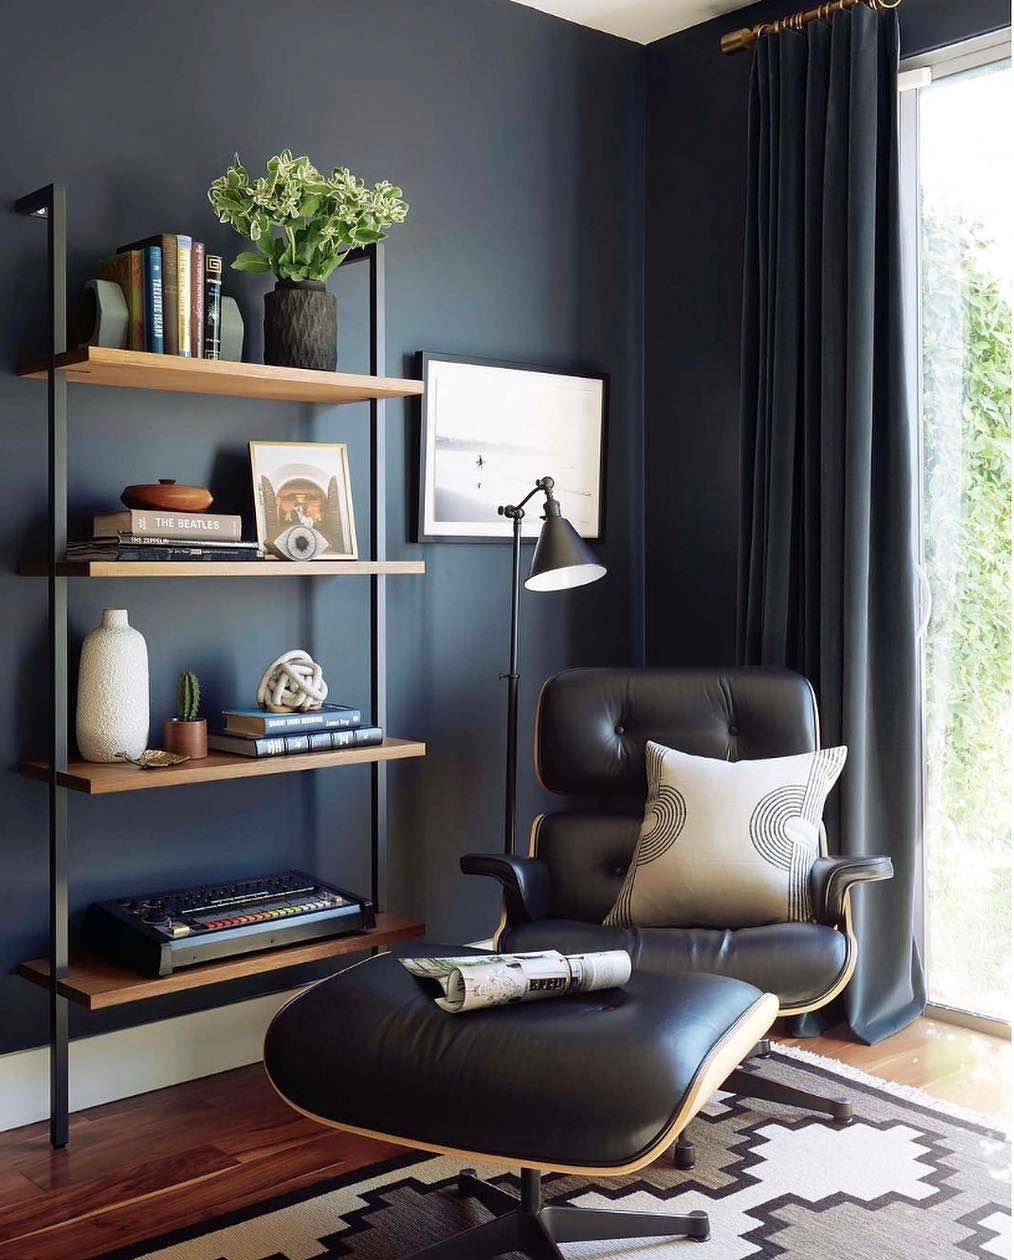 Pin by CB2 on Shop the look | Pinterest | Em henderson, Man room ...